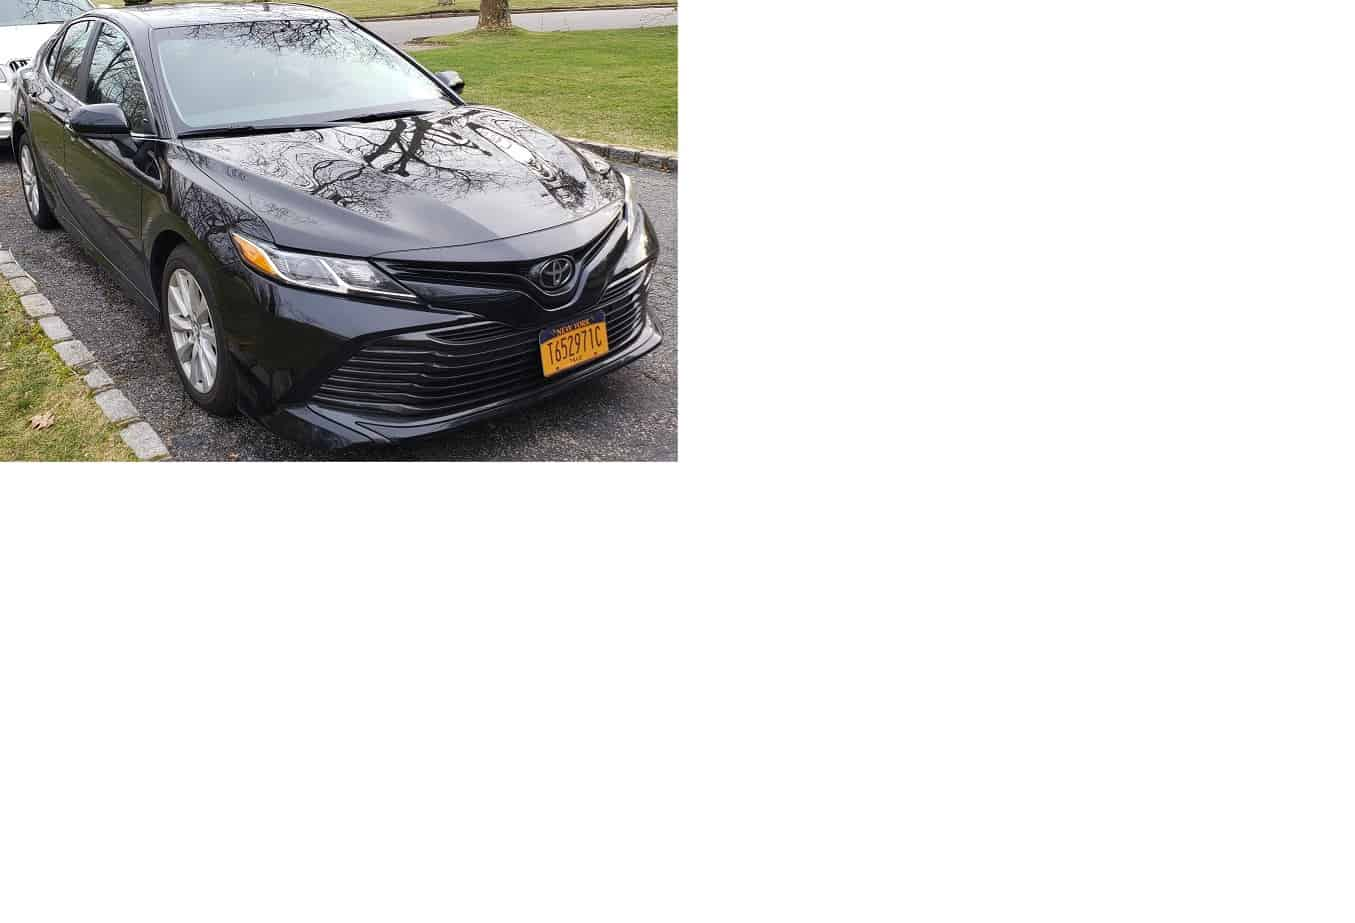 2019 CAMRY FOR RENT